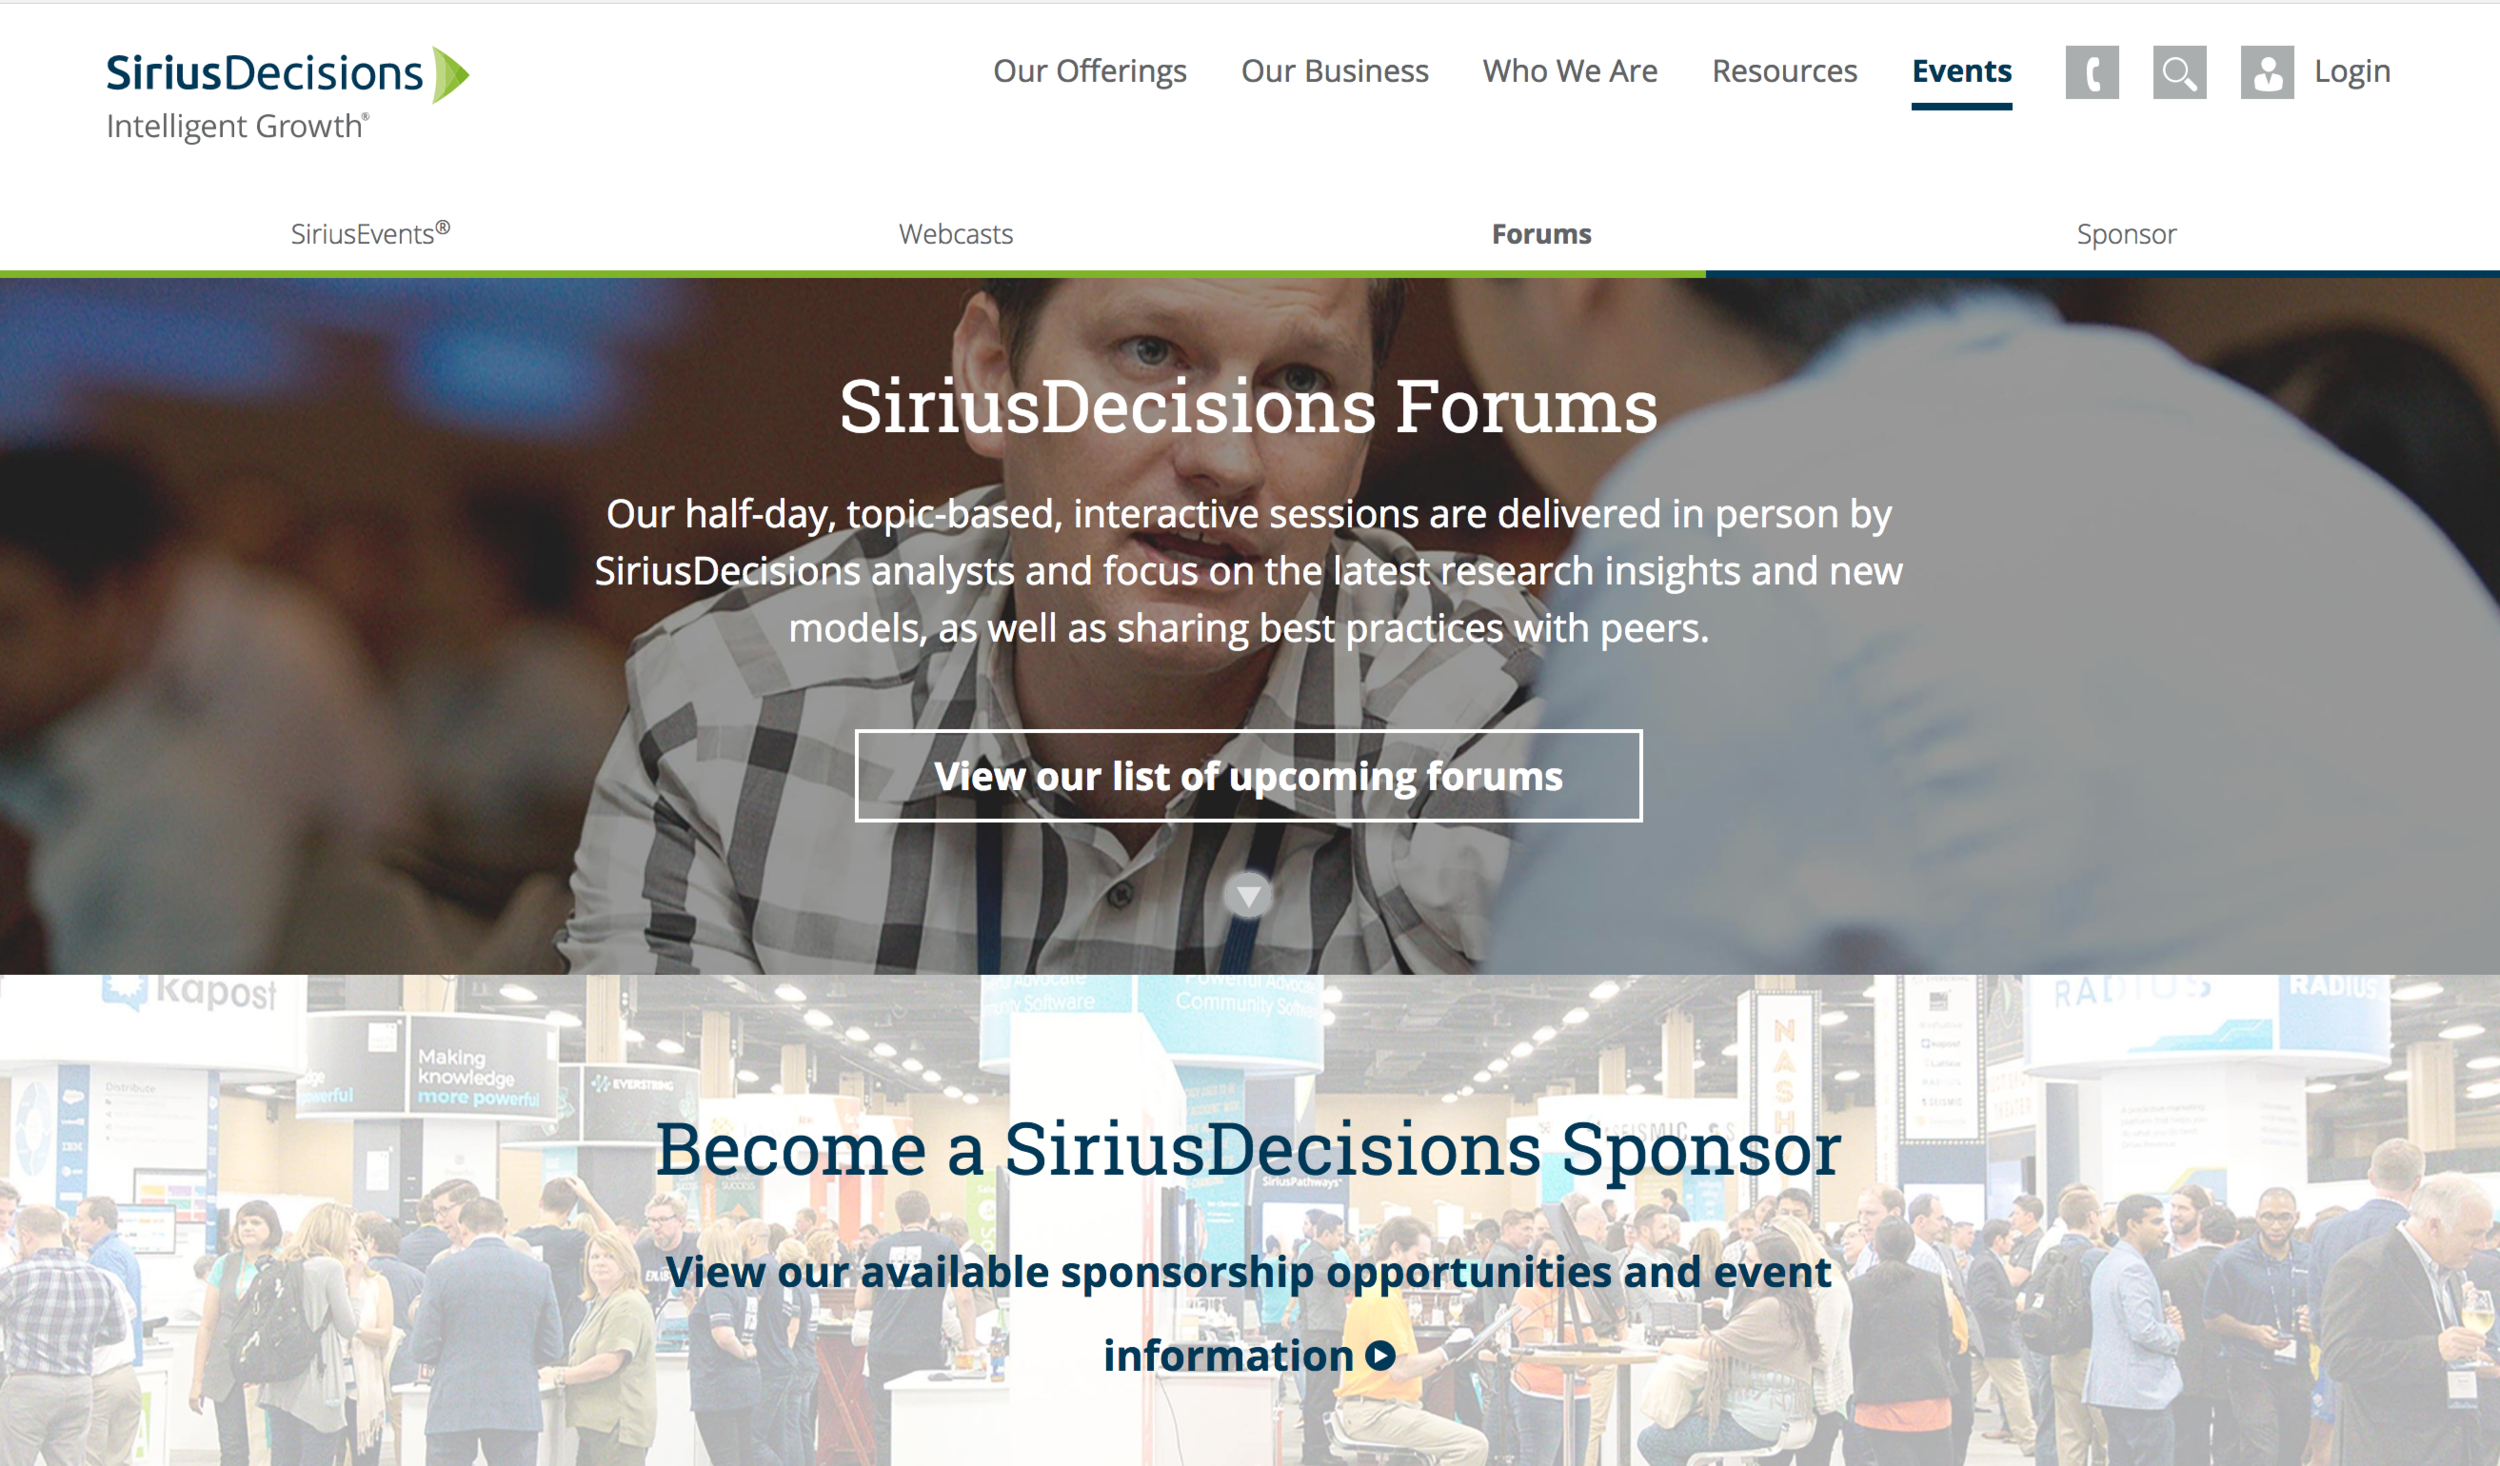 SiriusDecisions_website_1.png